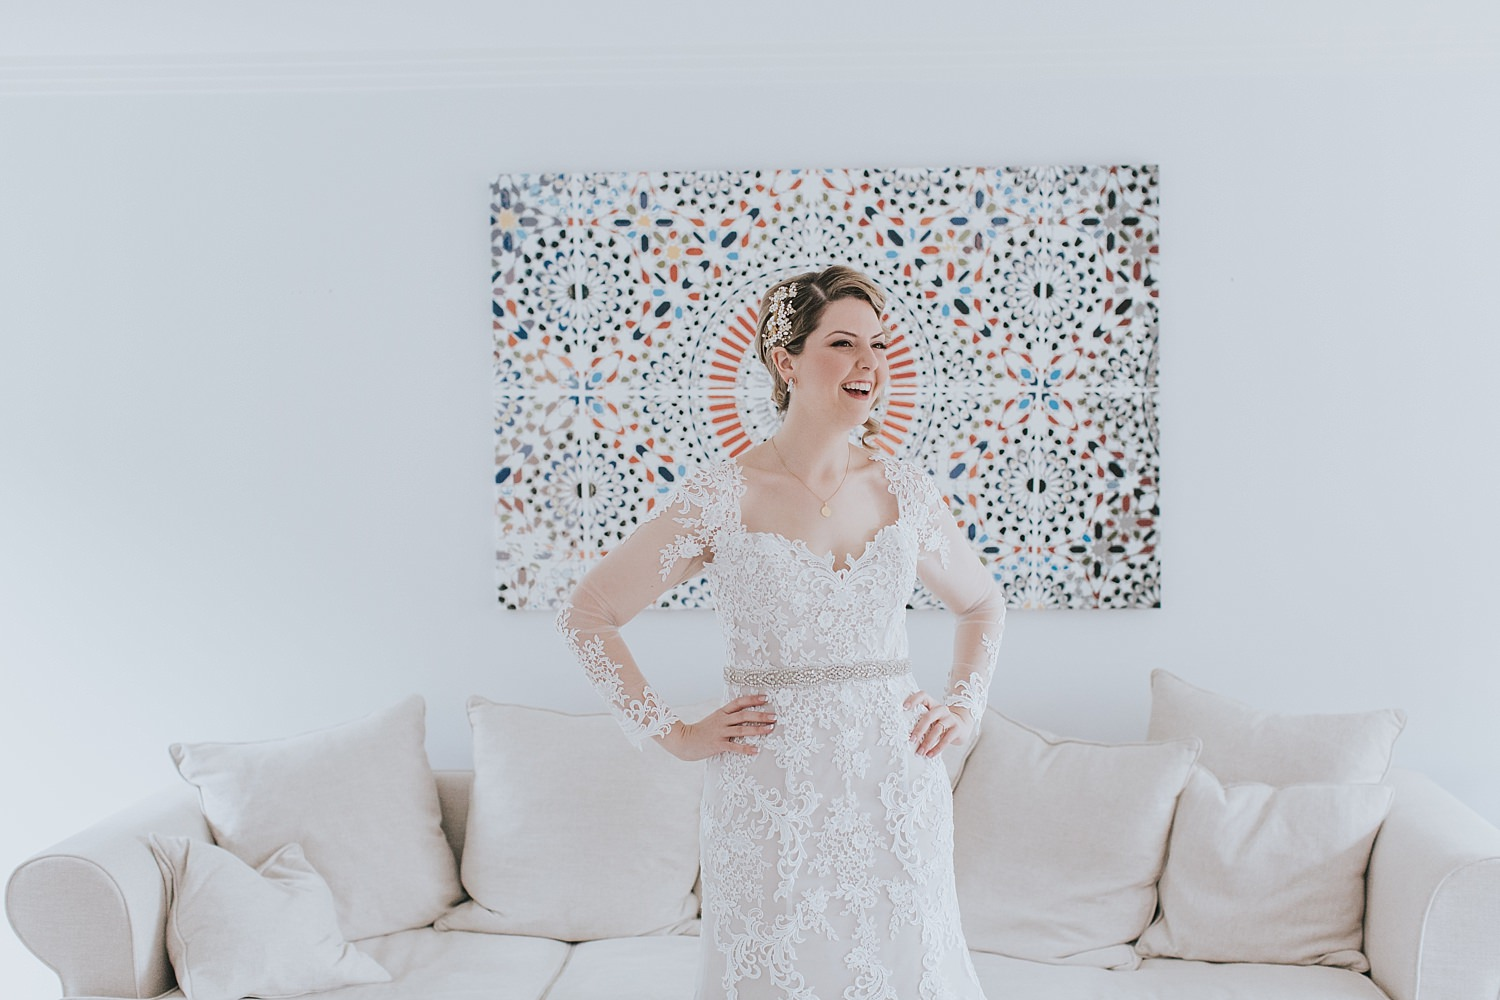 timeless wedding bride wearing lace gown